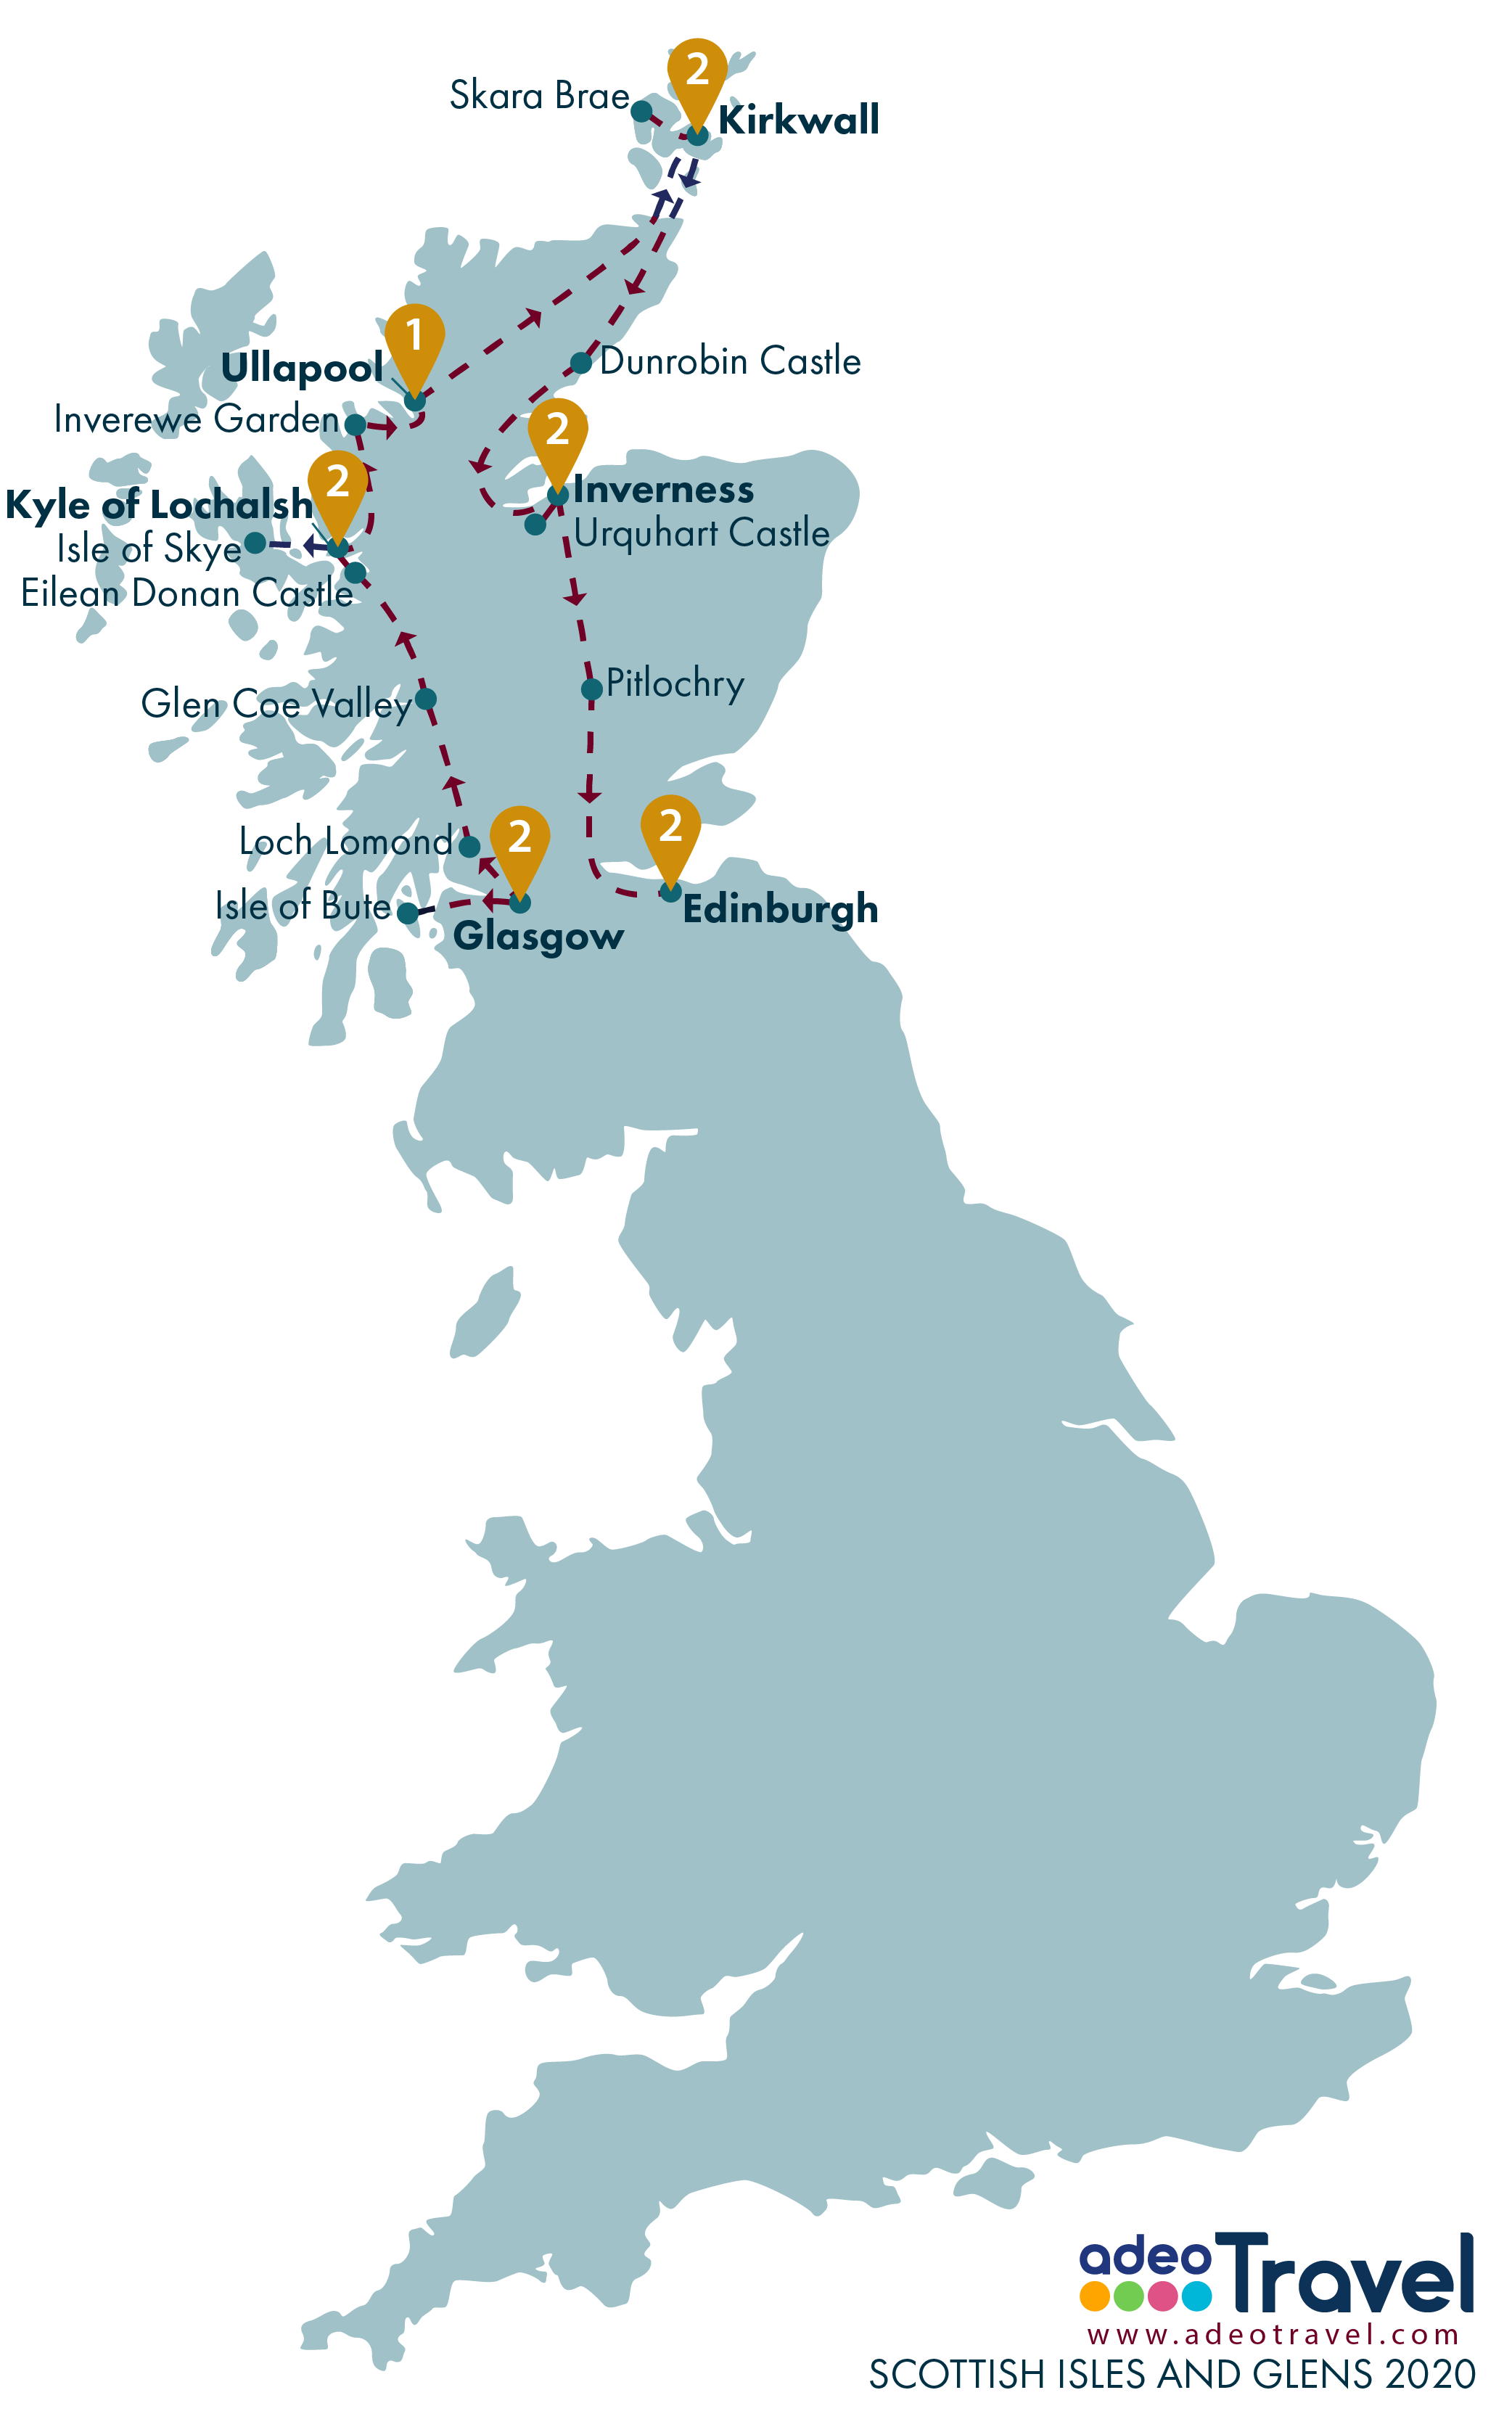 Map - Scottish Isles and Glens 2020